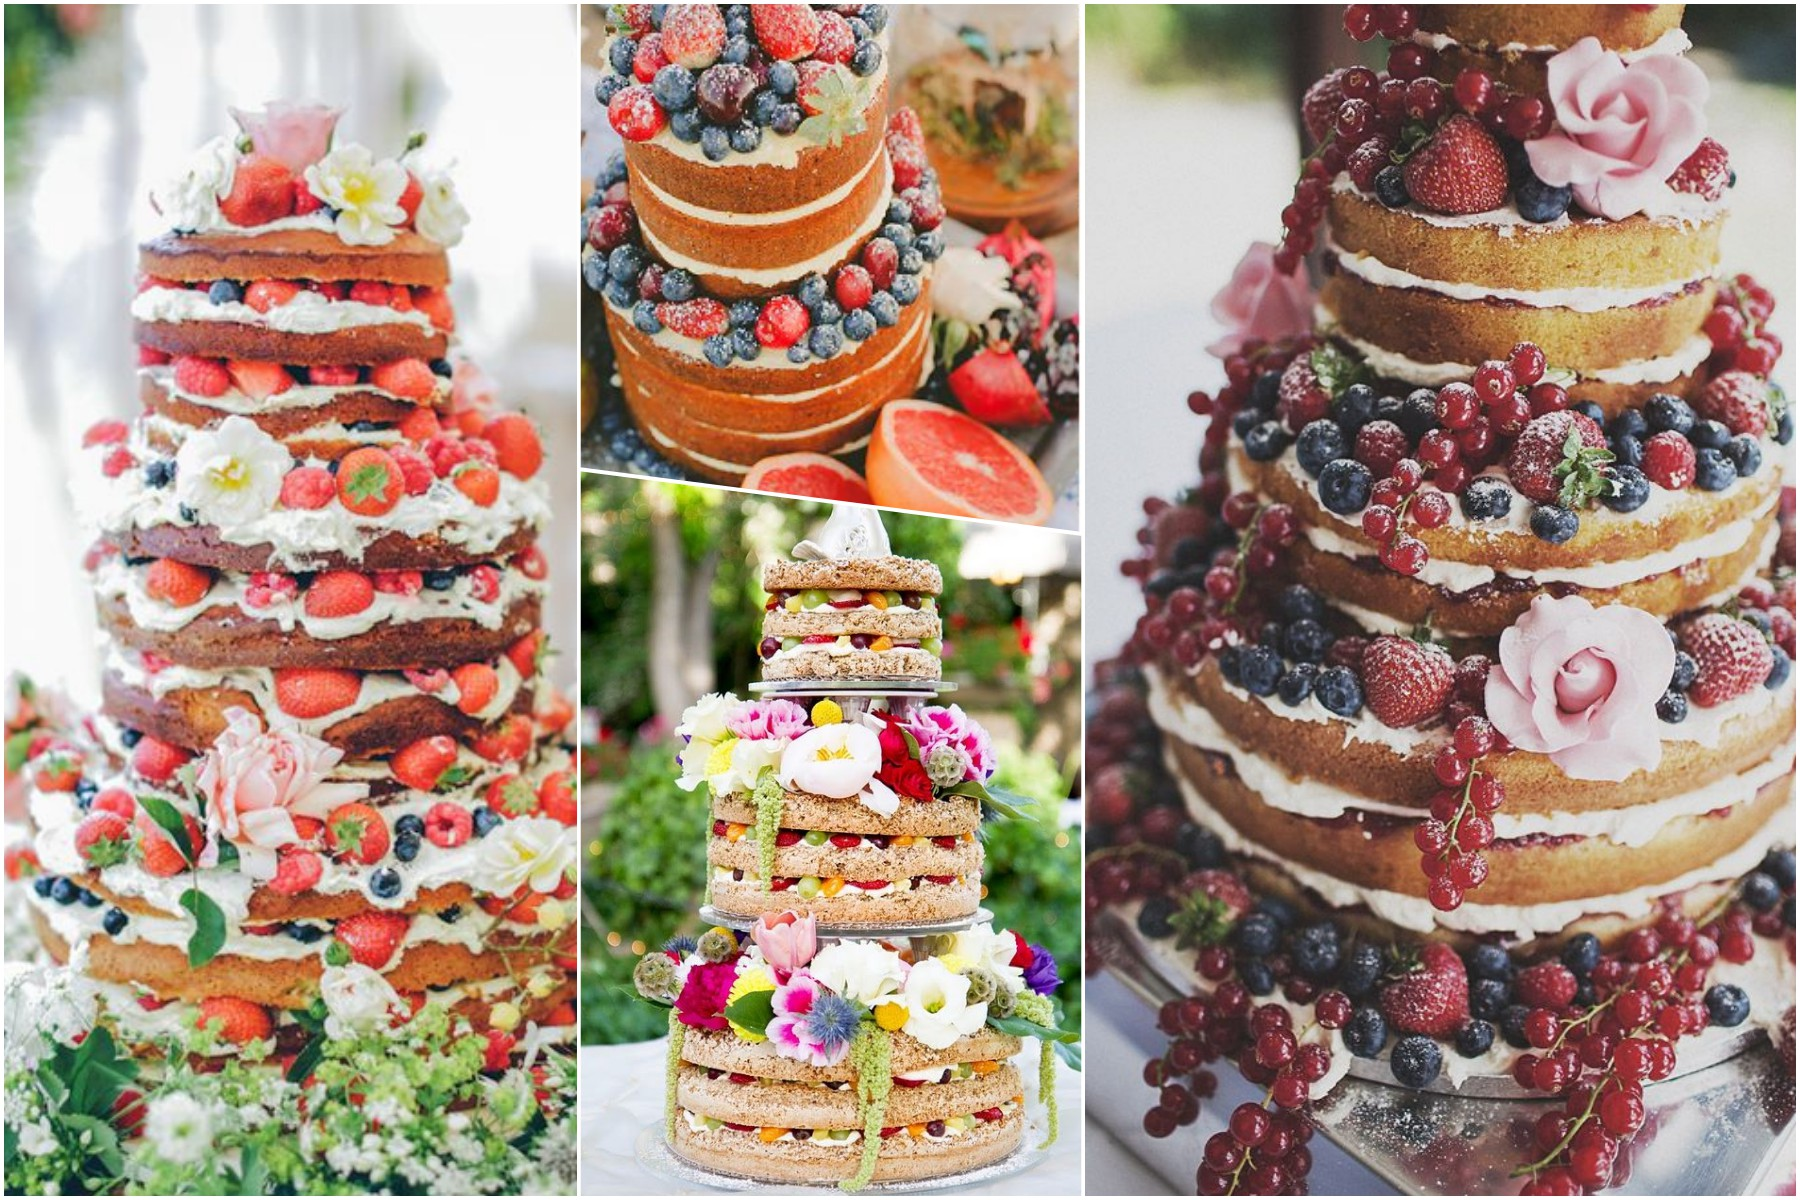 naked cake, fruits